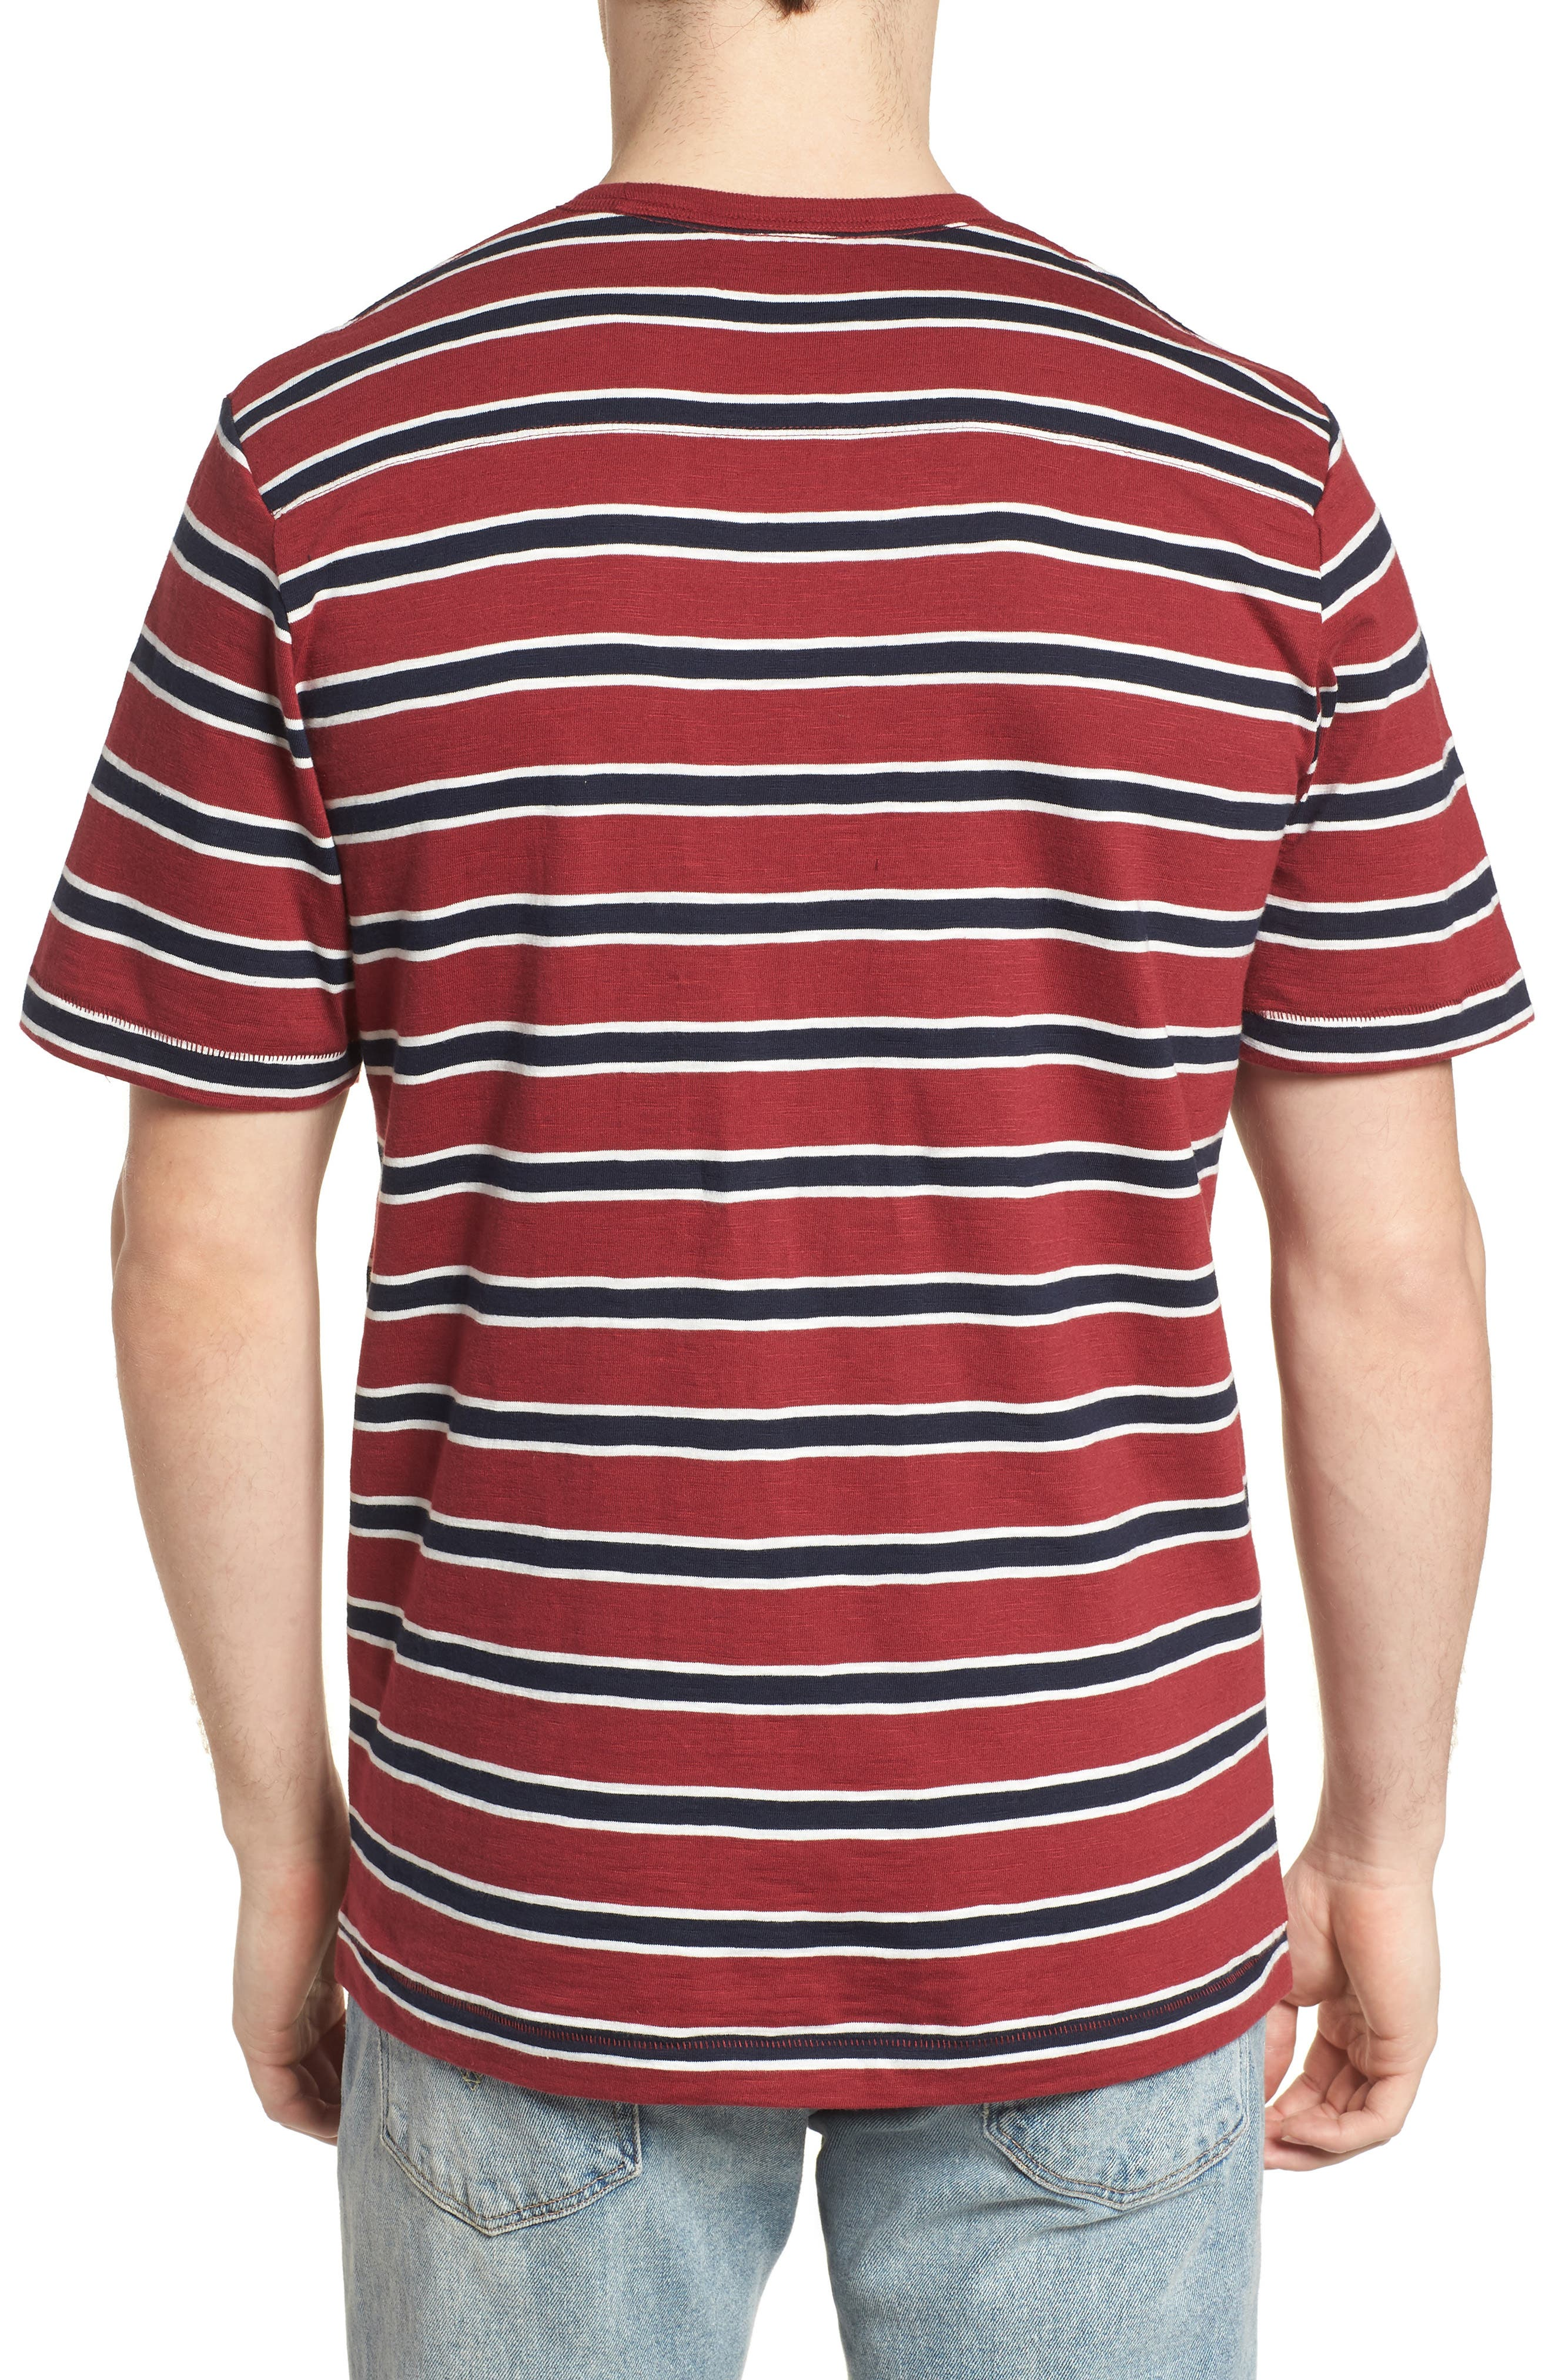 Old School Slim Fit Stripe T-Shirt,                             Alternate thumbnail 2, color,                             603